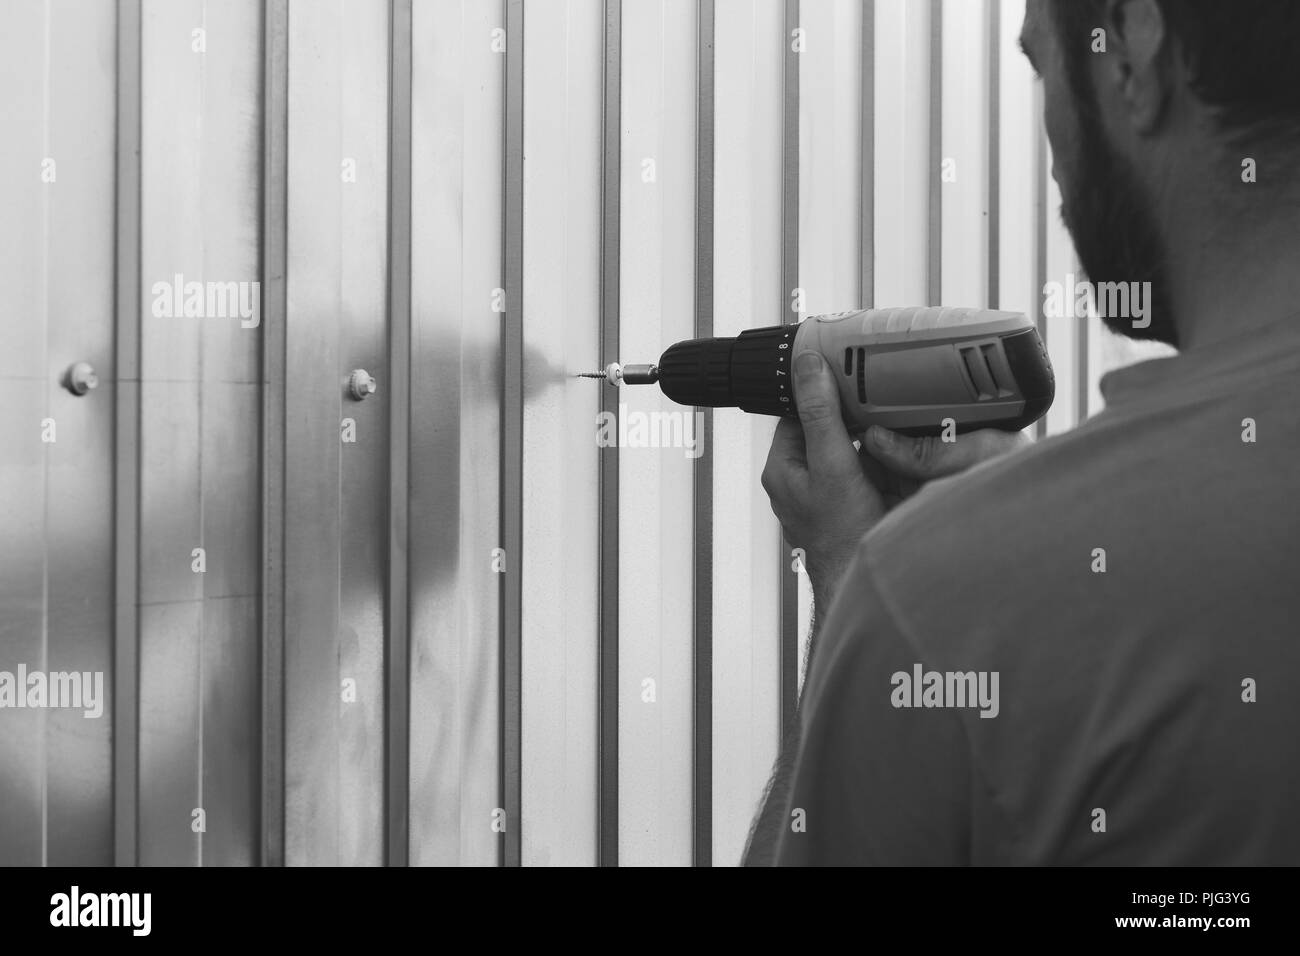 a bearded man with a screwdriver in his hands is screwed with self-tapping sheets of metal profile, selective focus black and white photo - Stock Image